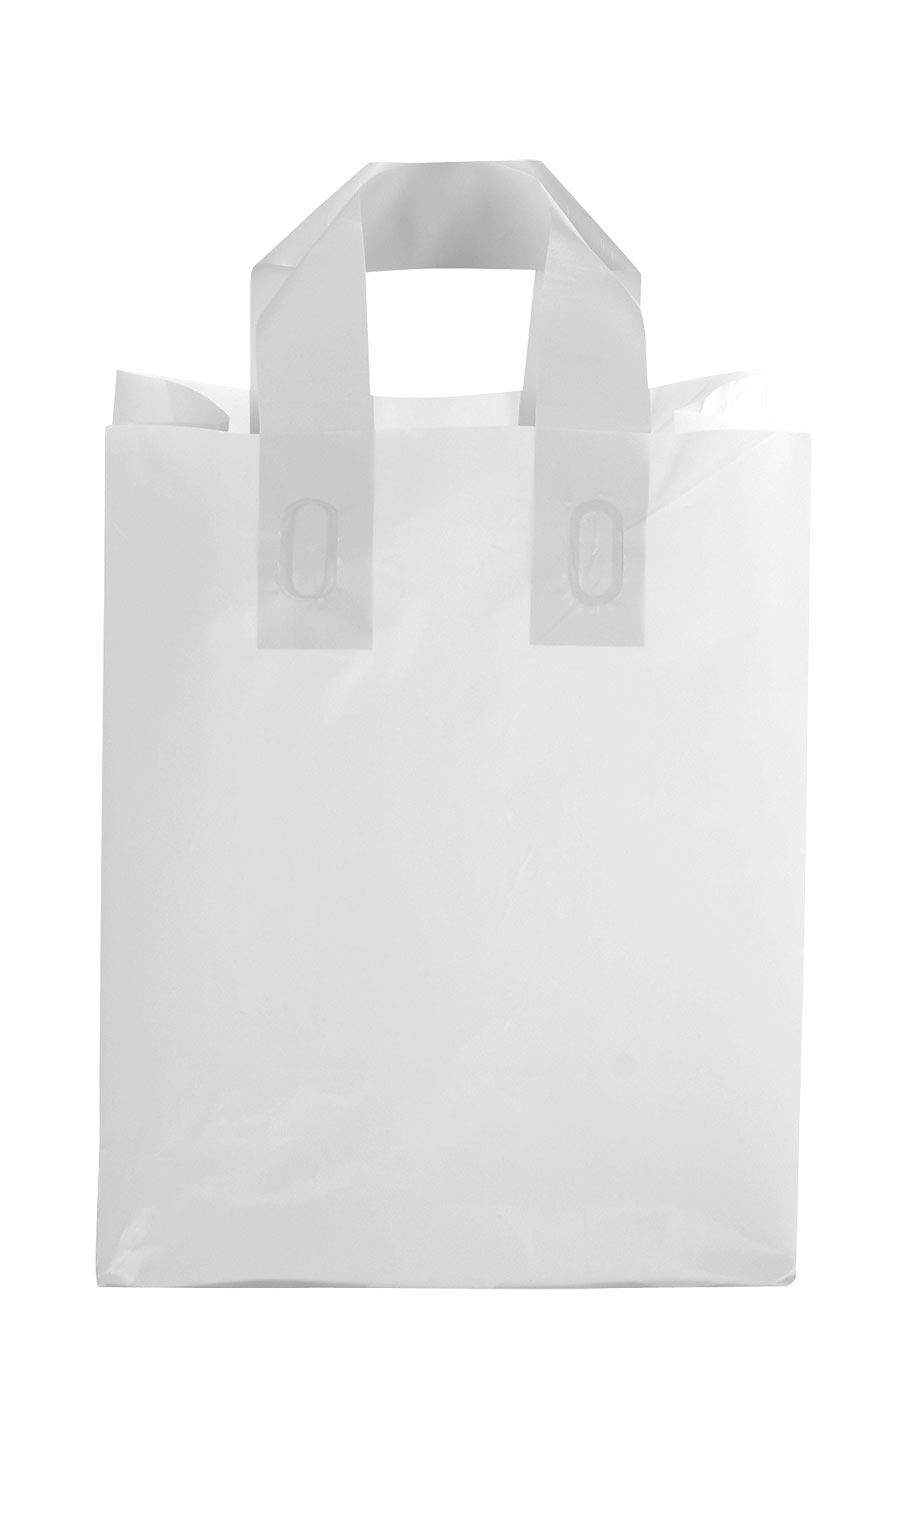 SSWBasics Medium Clear Frosted Plastic Shopping Bags - 8'' x 5'' x 10'' - Case of 100